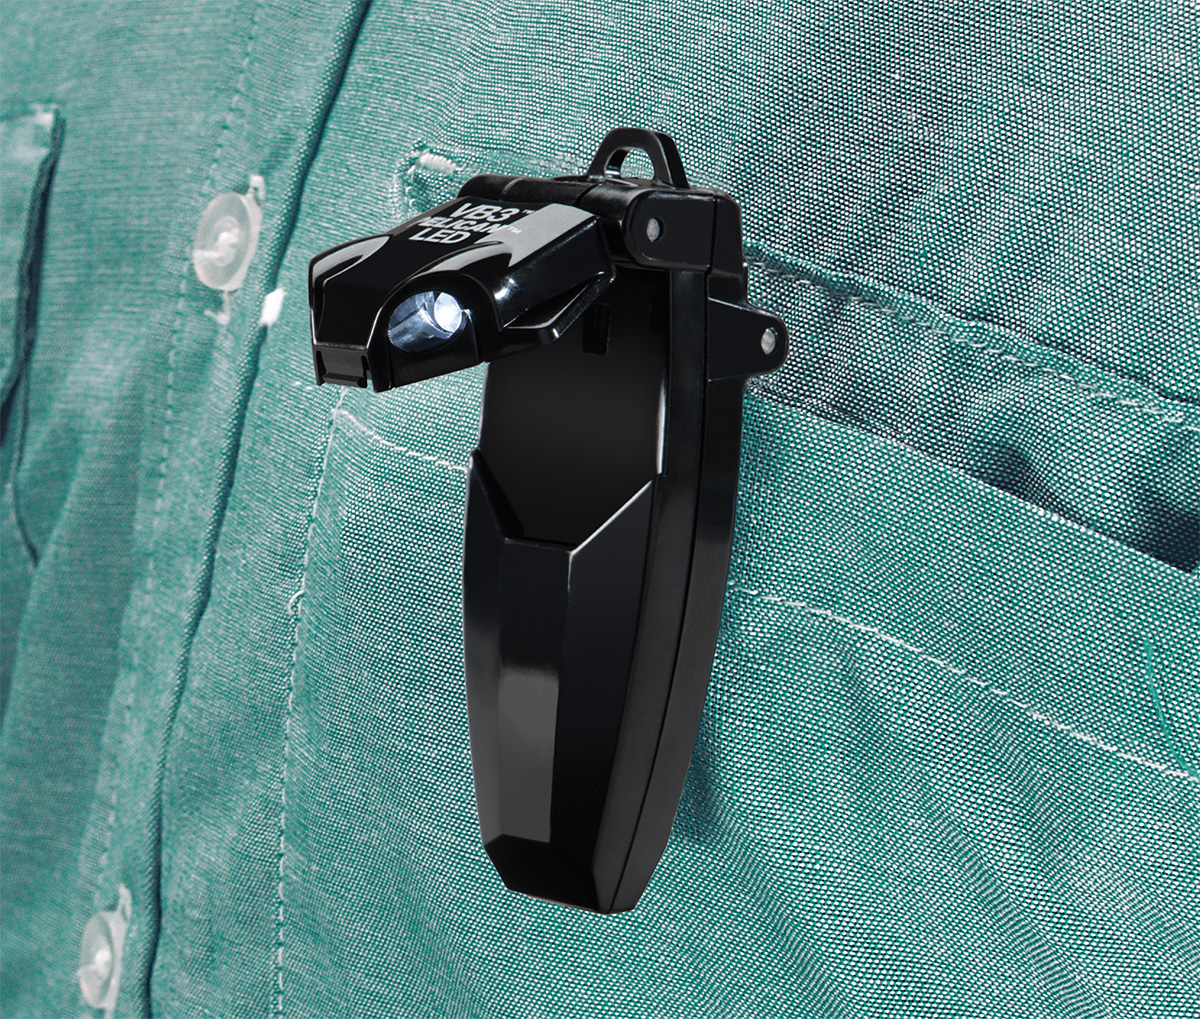 pelican peli products 2220 bright shirt pocket clip on led light